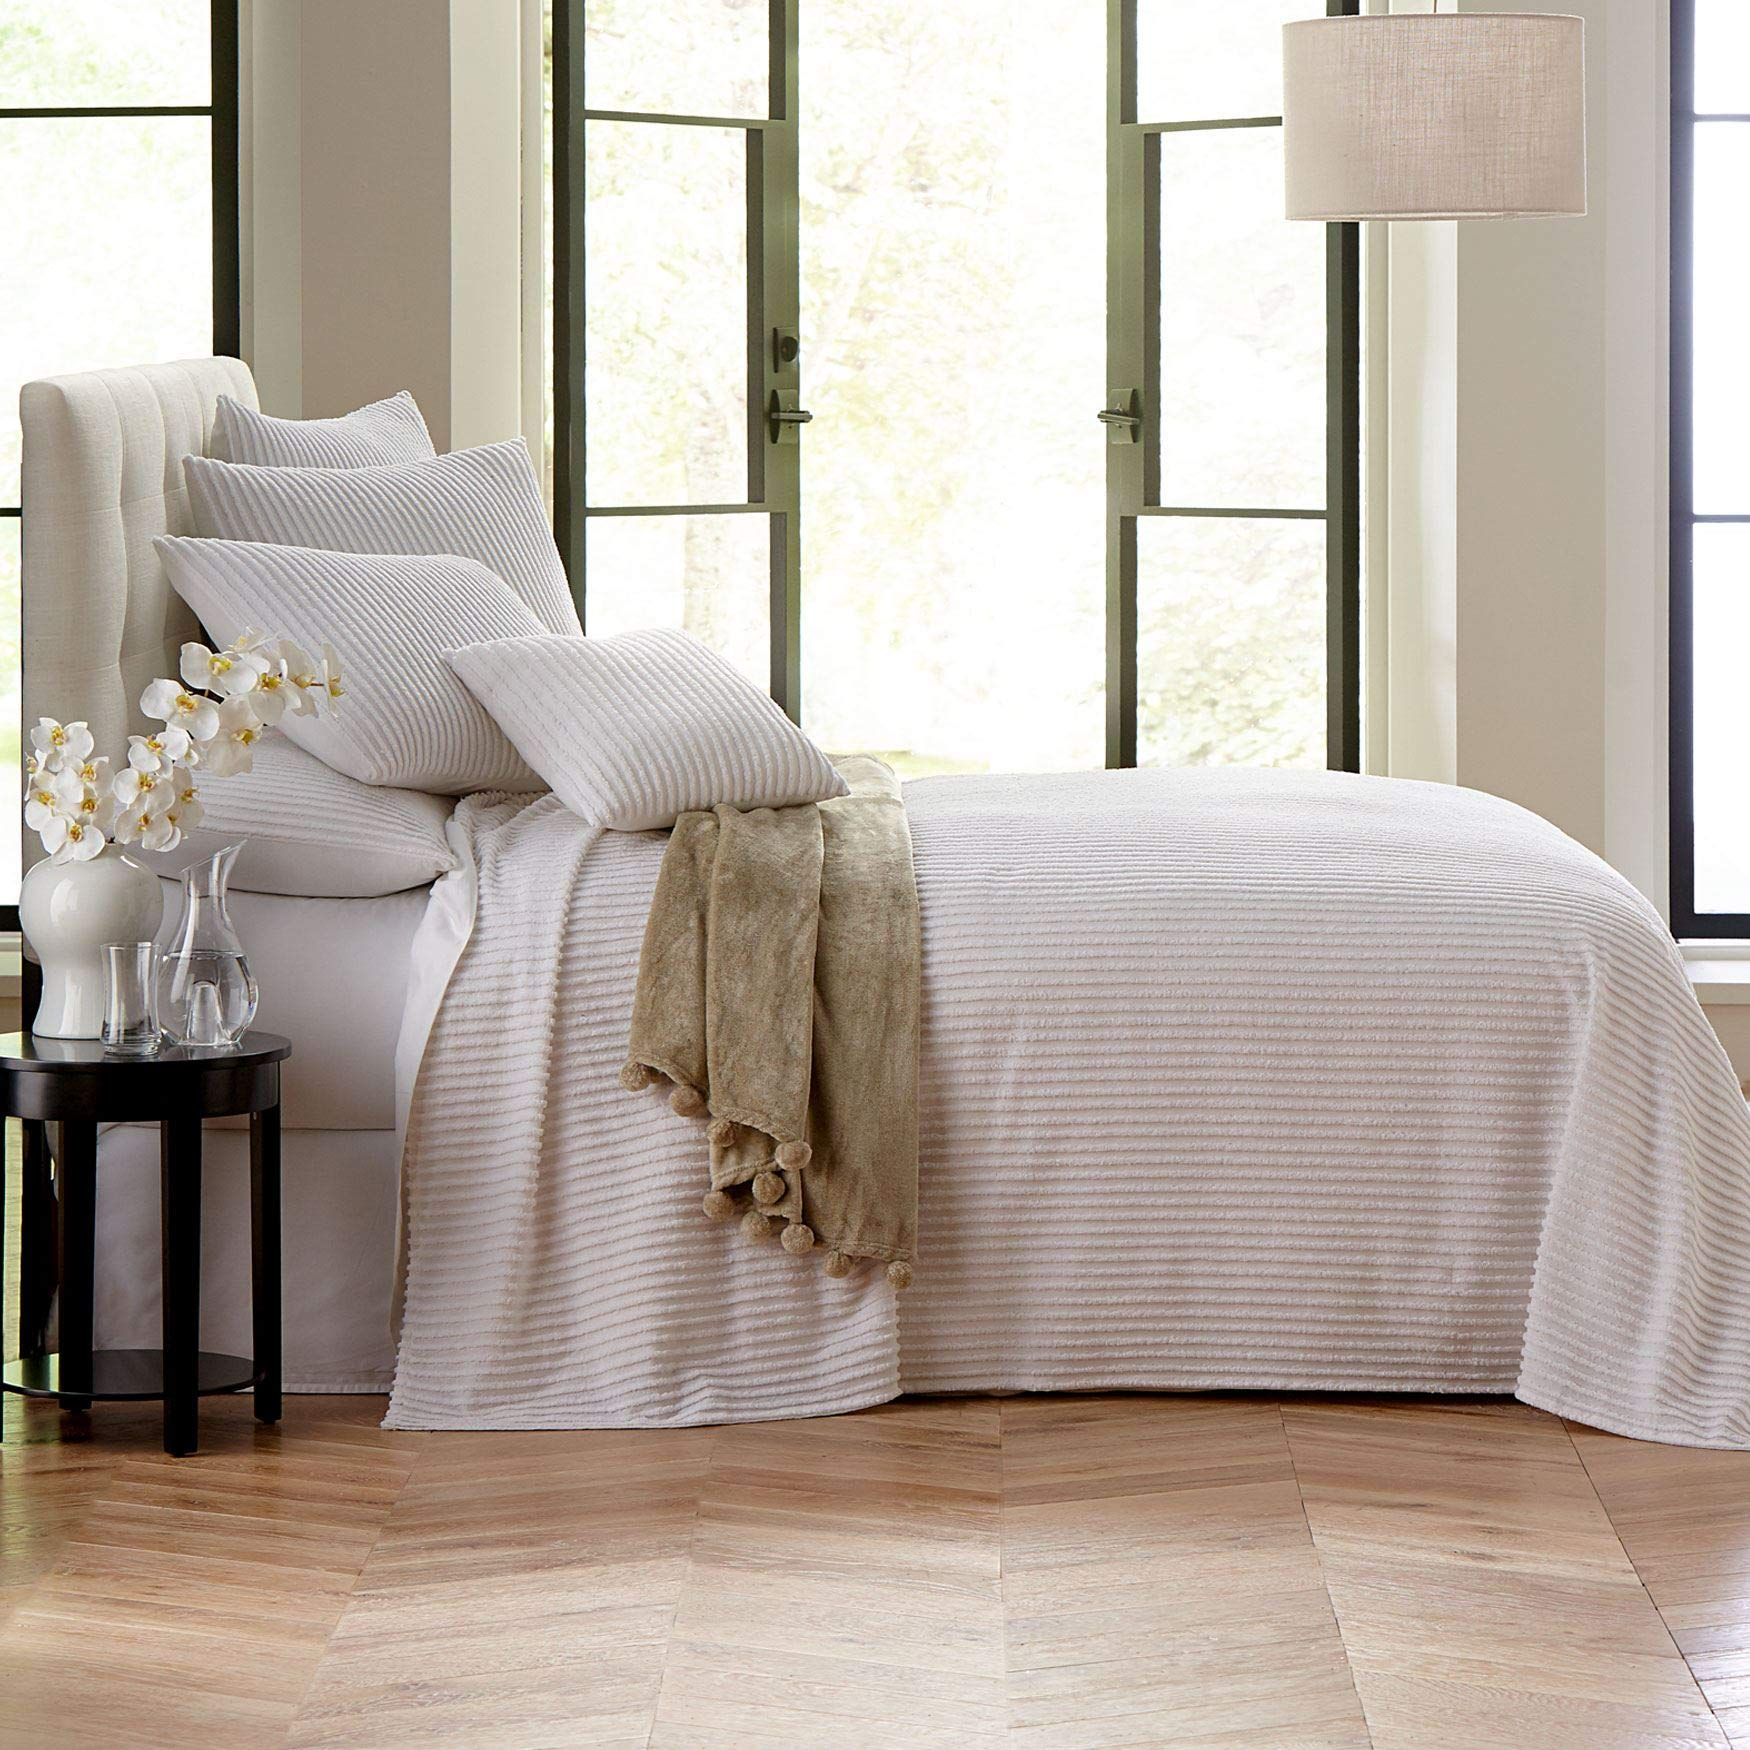 BrylaneHome Chenille Bedspread - White, Queen by BrylaneHome (Image #1)